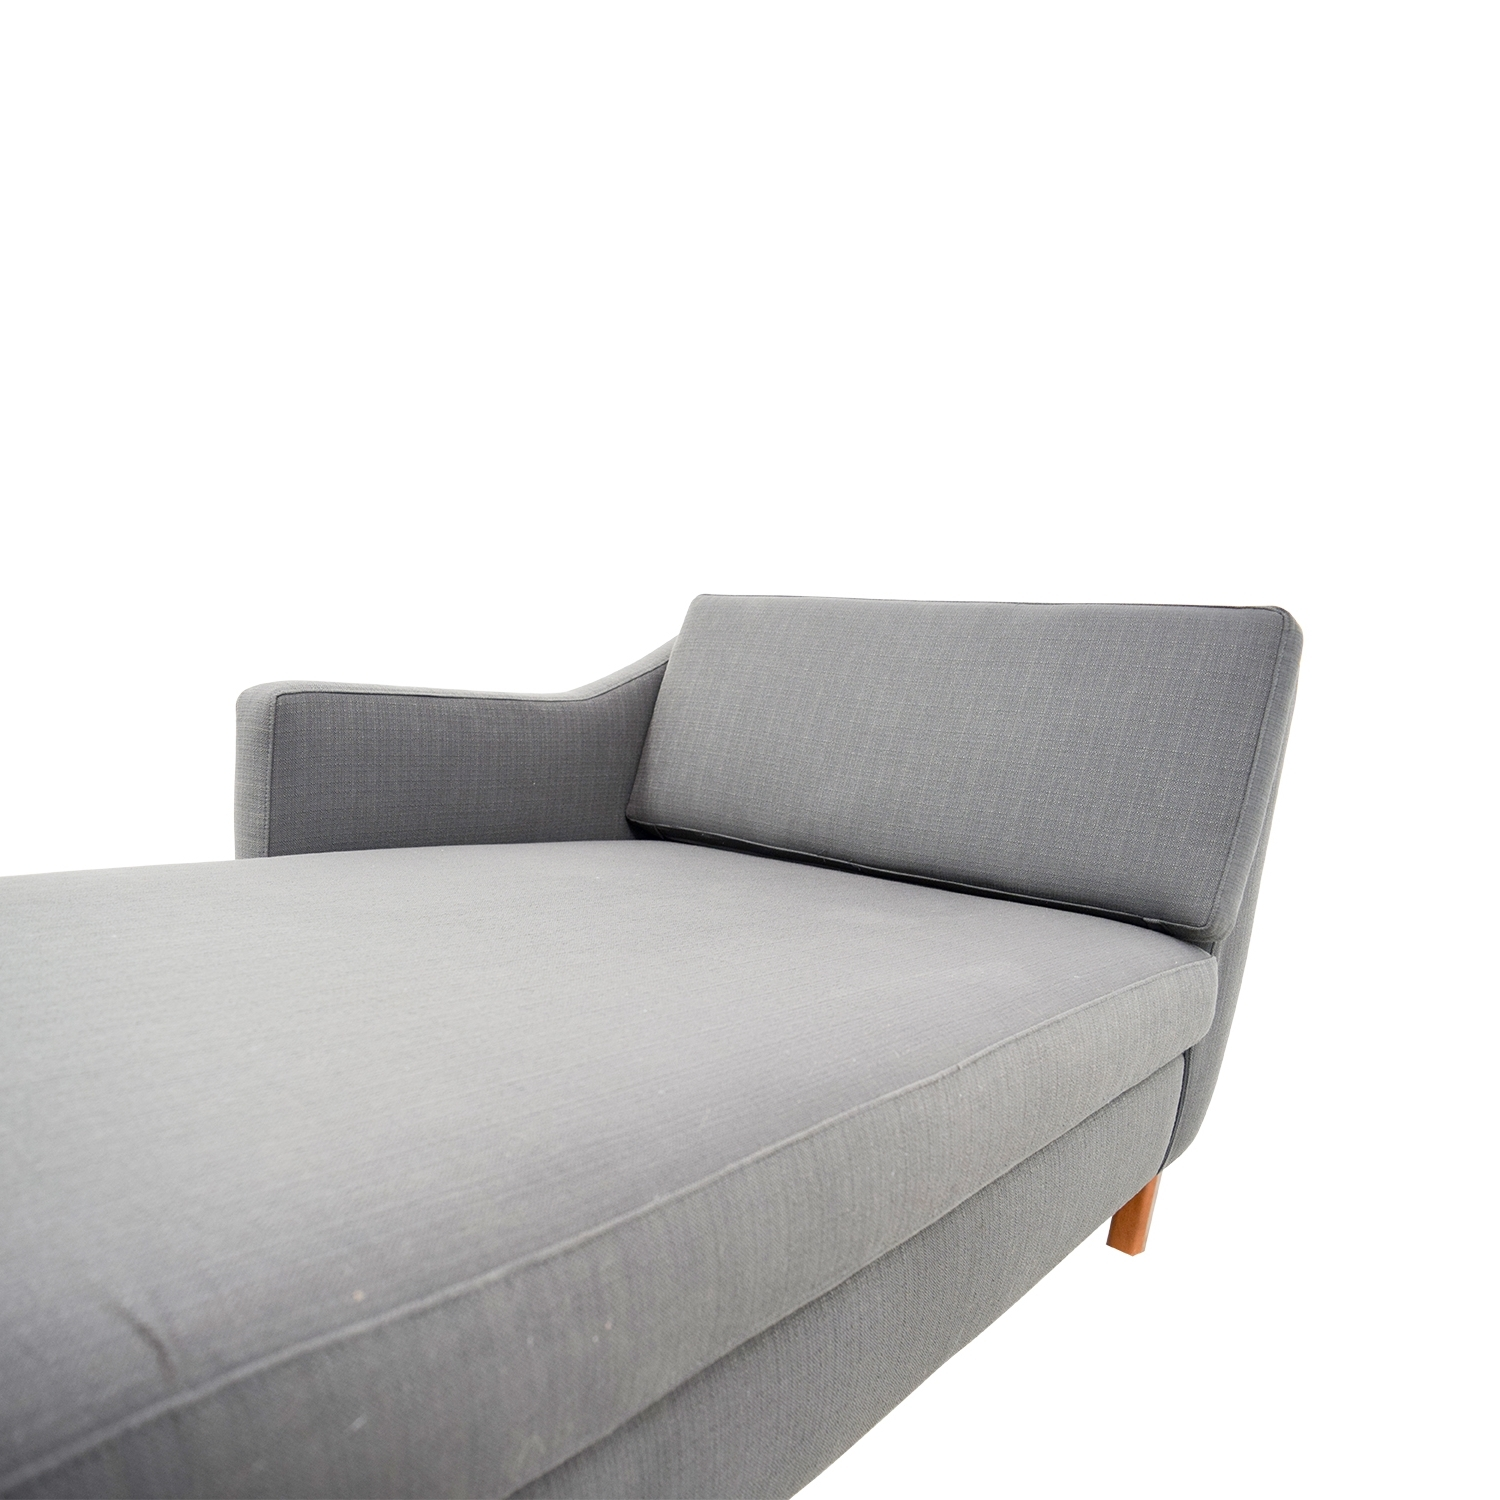 [%72% Off – Benchmade Modern Benchmade Modern Gray Single Arm Chaise With Regard To Well Known Gray Chaises|Gray Chaises In Current 72% Off – Benchmade Modern Benchmade Modern Gray Single Arm Chaise|Most Recently Released Gray Chaises Inside 72% Off – Benchmade Modern Benchmade Modern Gray Single Arm Chaise|Favorite 72% Off – Benchmade Modern Benchmade Modern Gray Single Arm Chaise Intended For Gray Chaises%] (View 8 of 15)